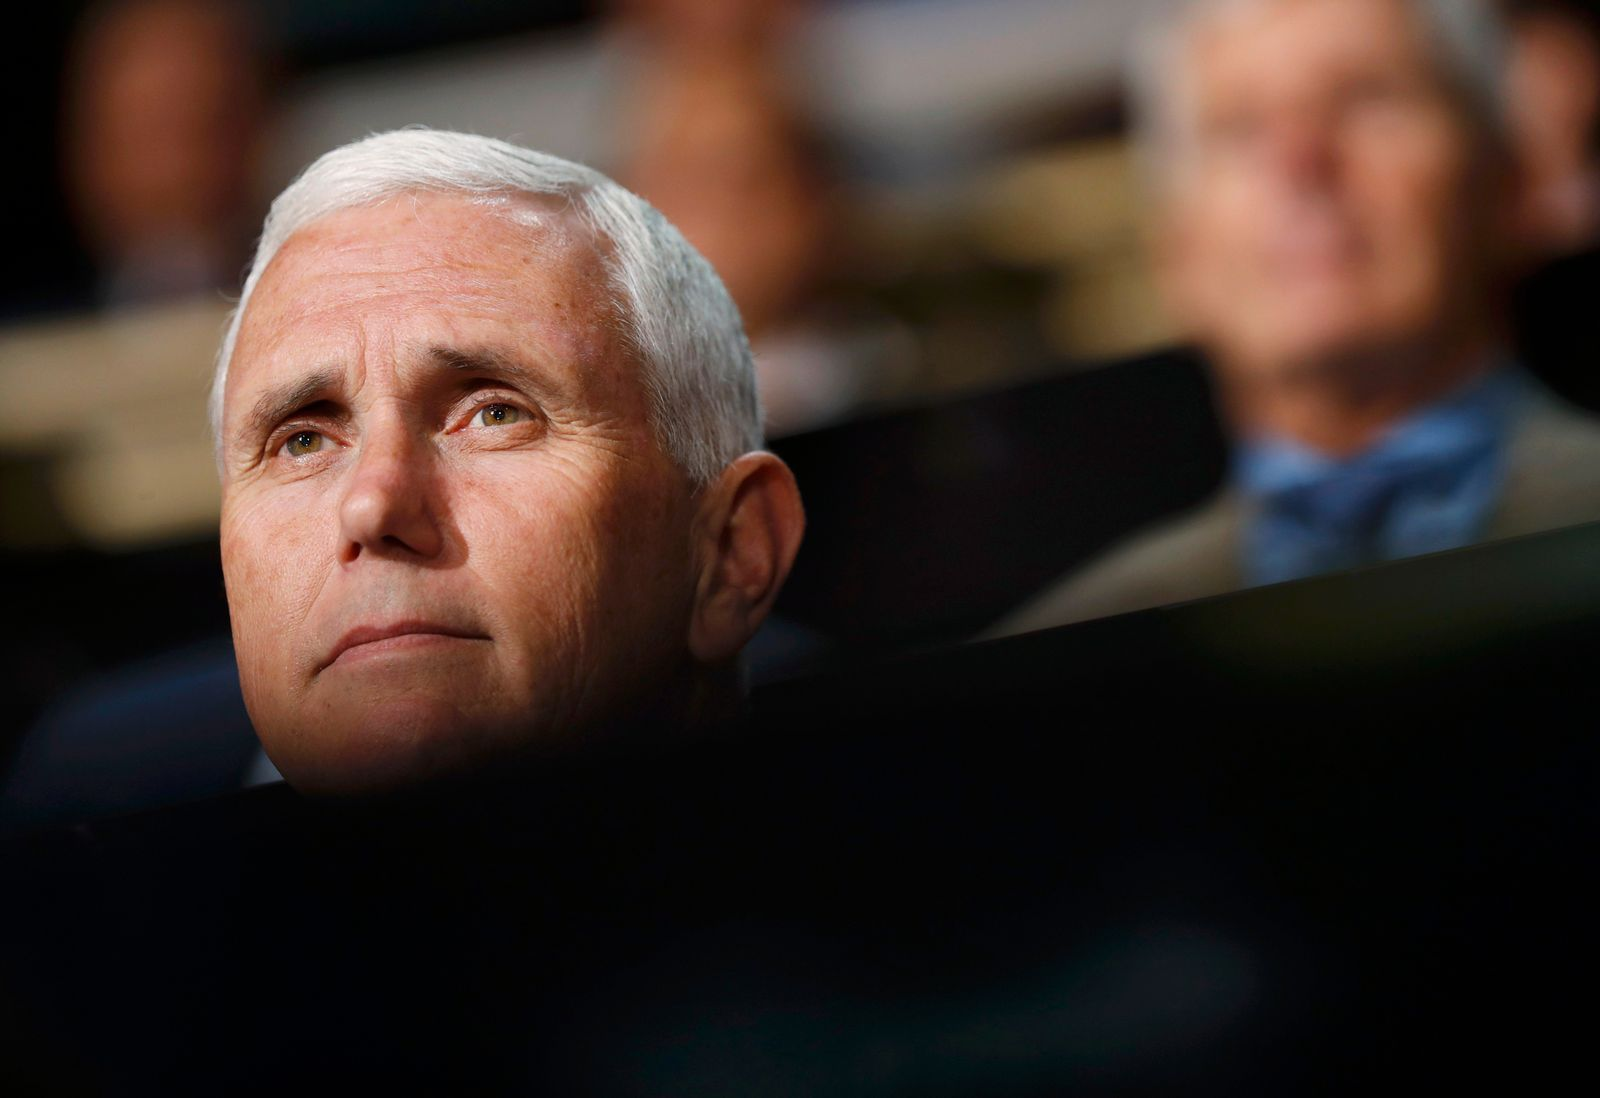 Republican U.S. vice presidential nominee Mike Pence (L) listens to speeches at the Republican National Convention in Cleveland